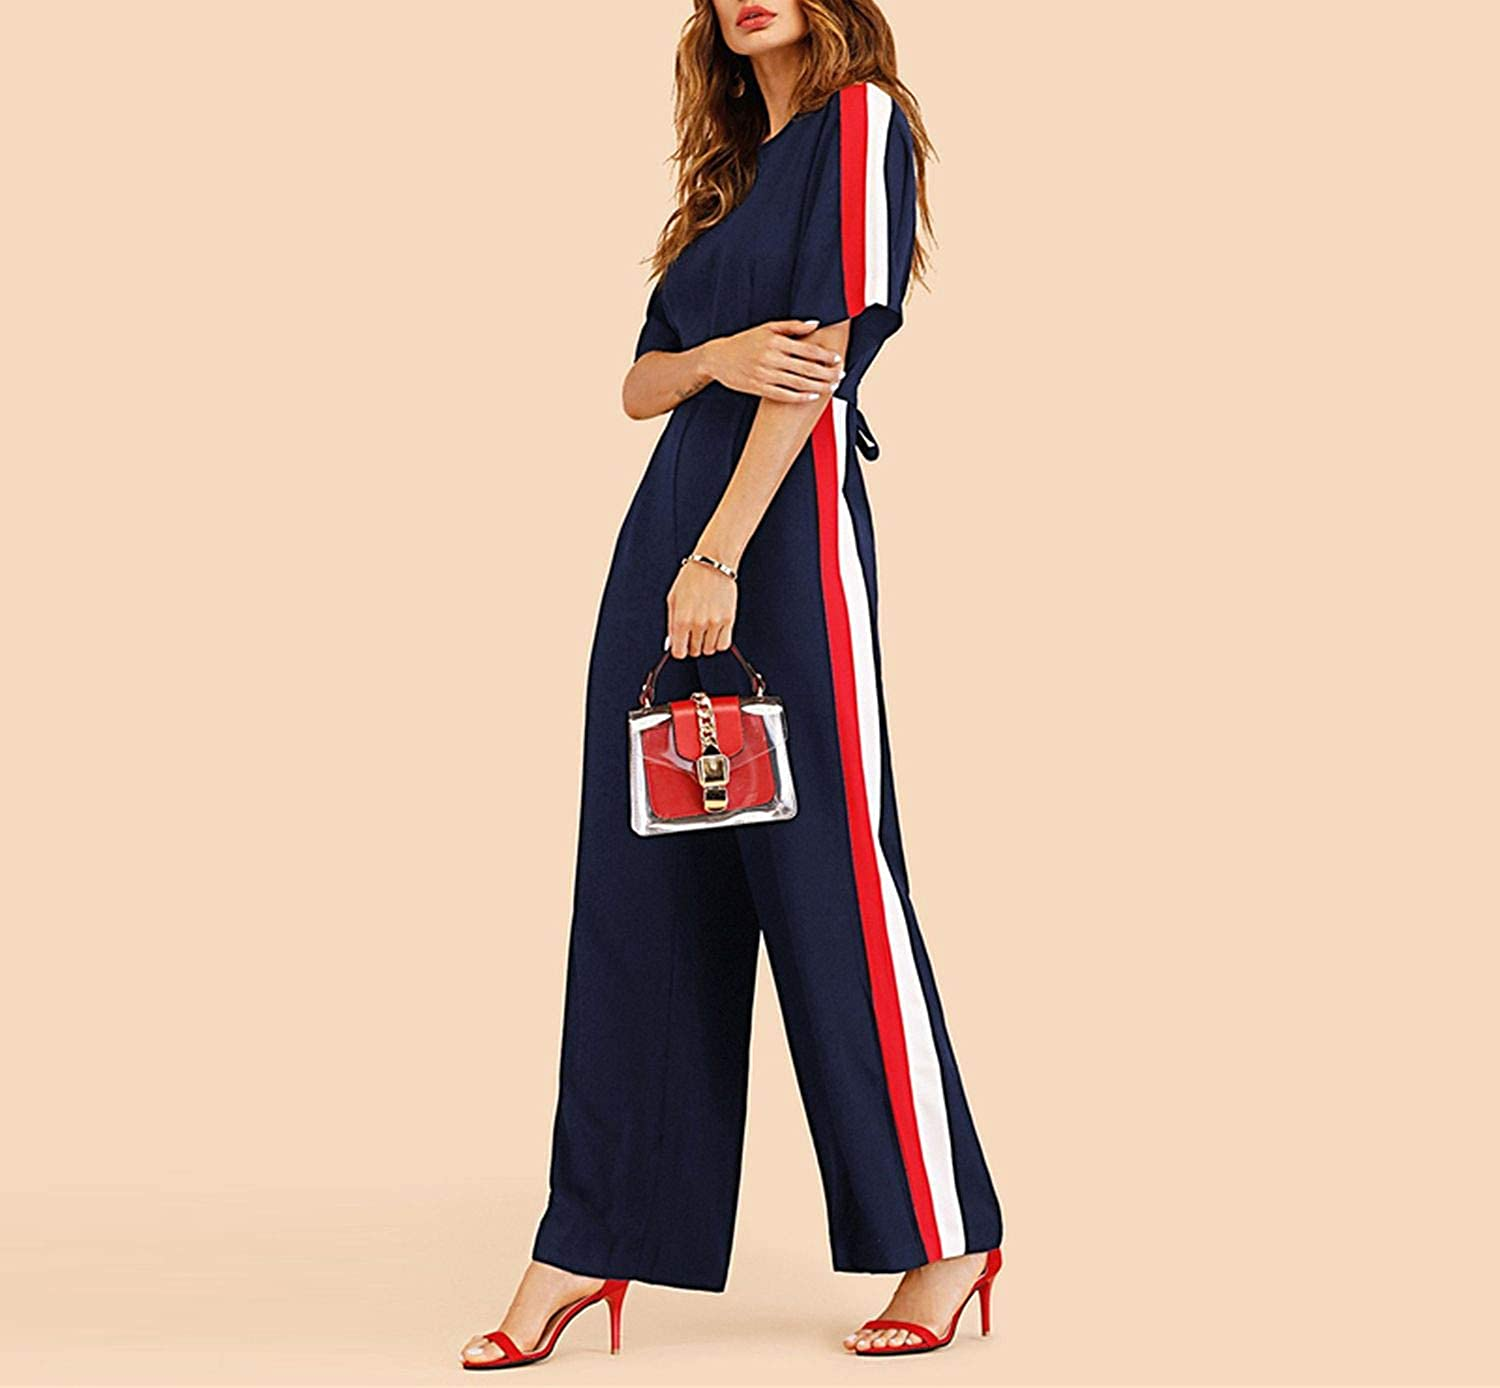 AMAZING AMAZING Navy Striped Side Work Elegant Wide Leg Jumpsuit Half Sleeve High Waist 2018 Autumn Women Jumpsuits